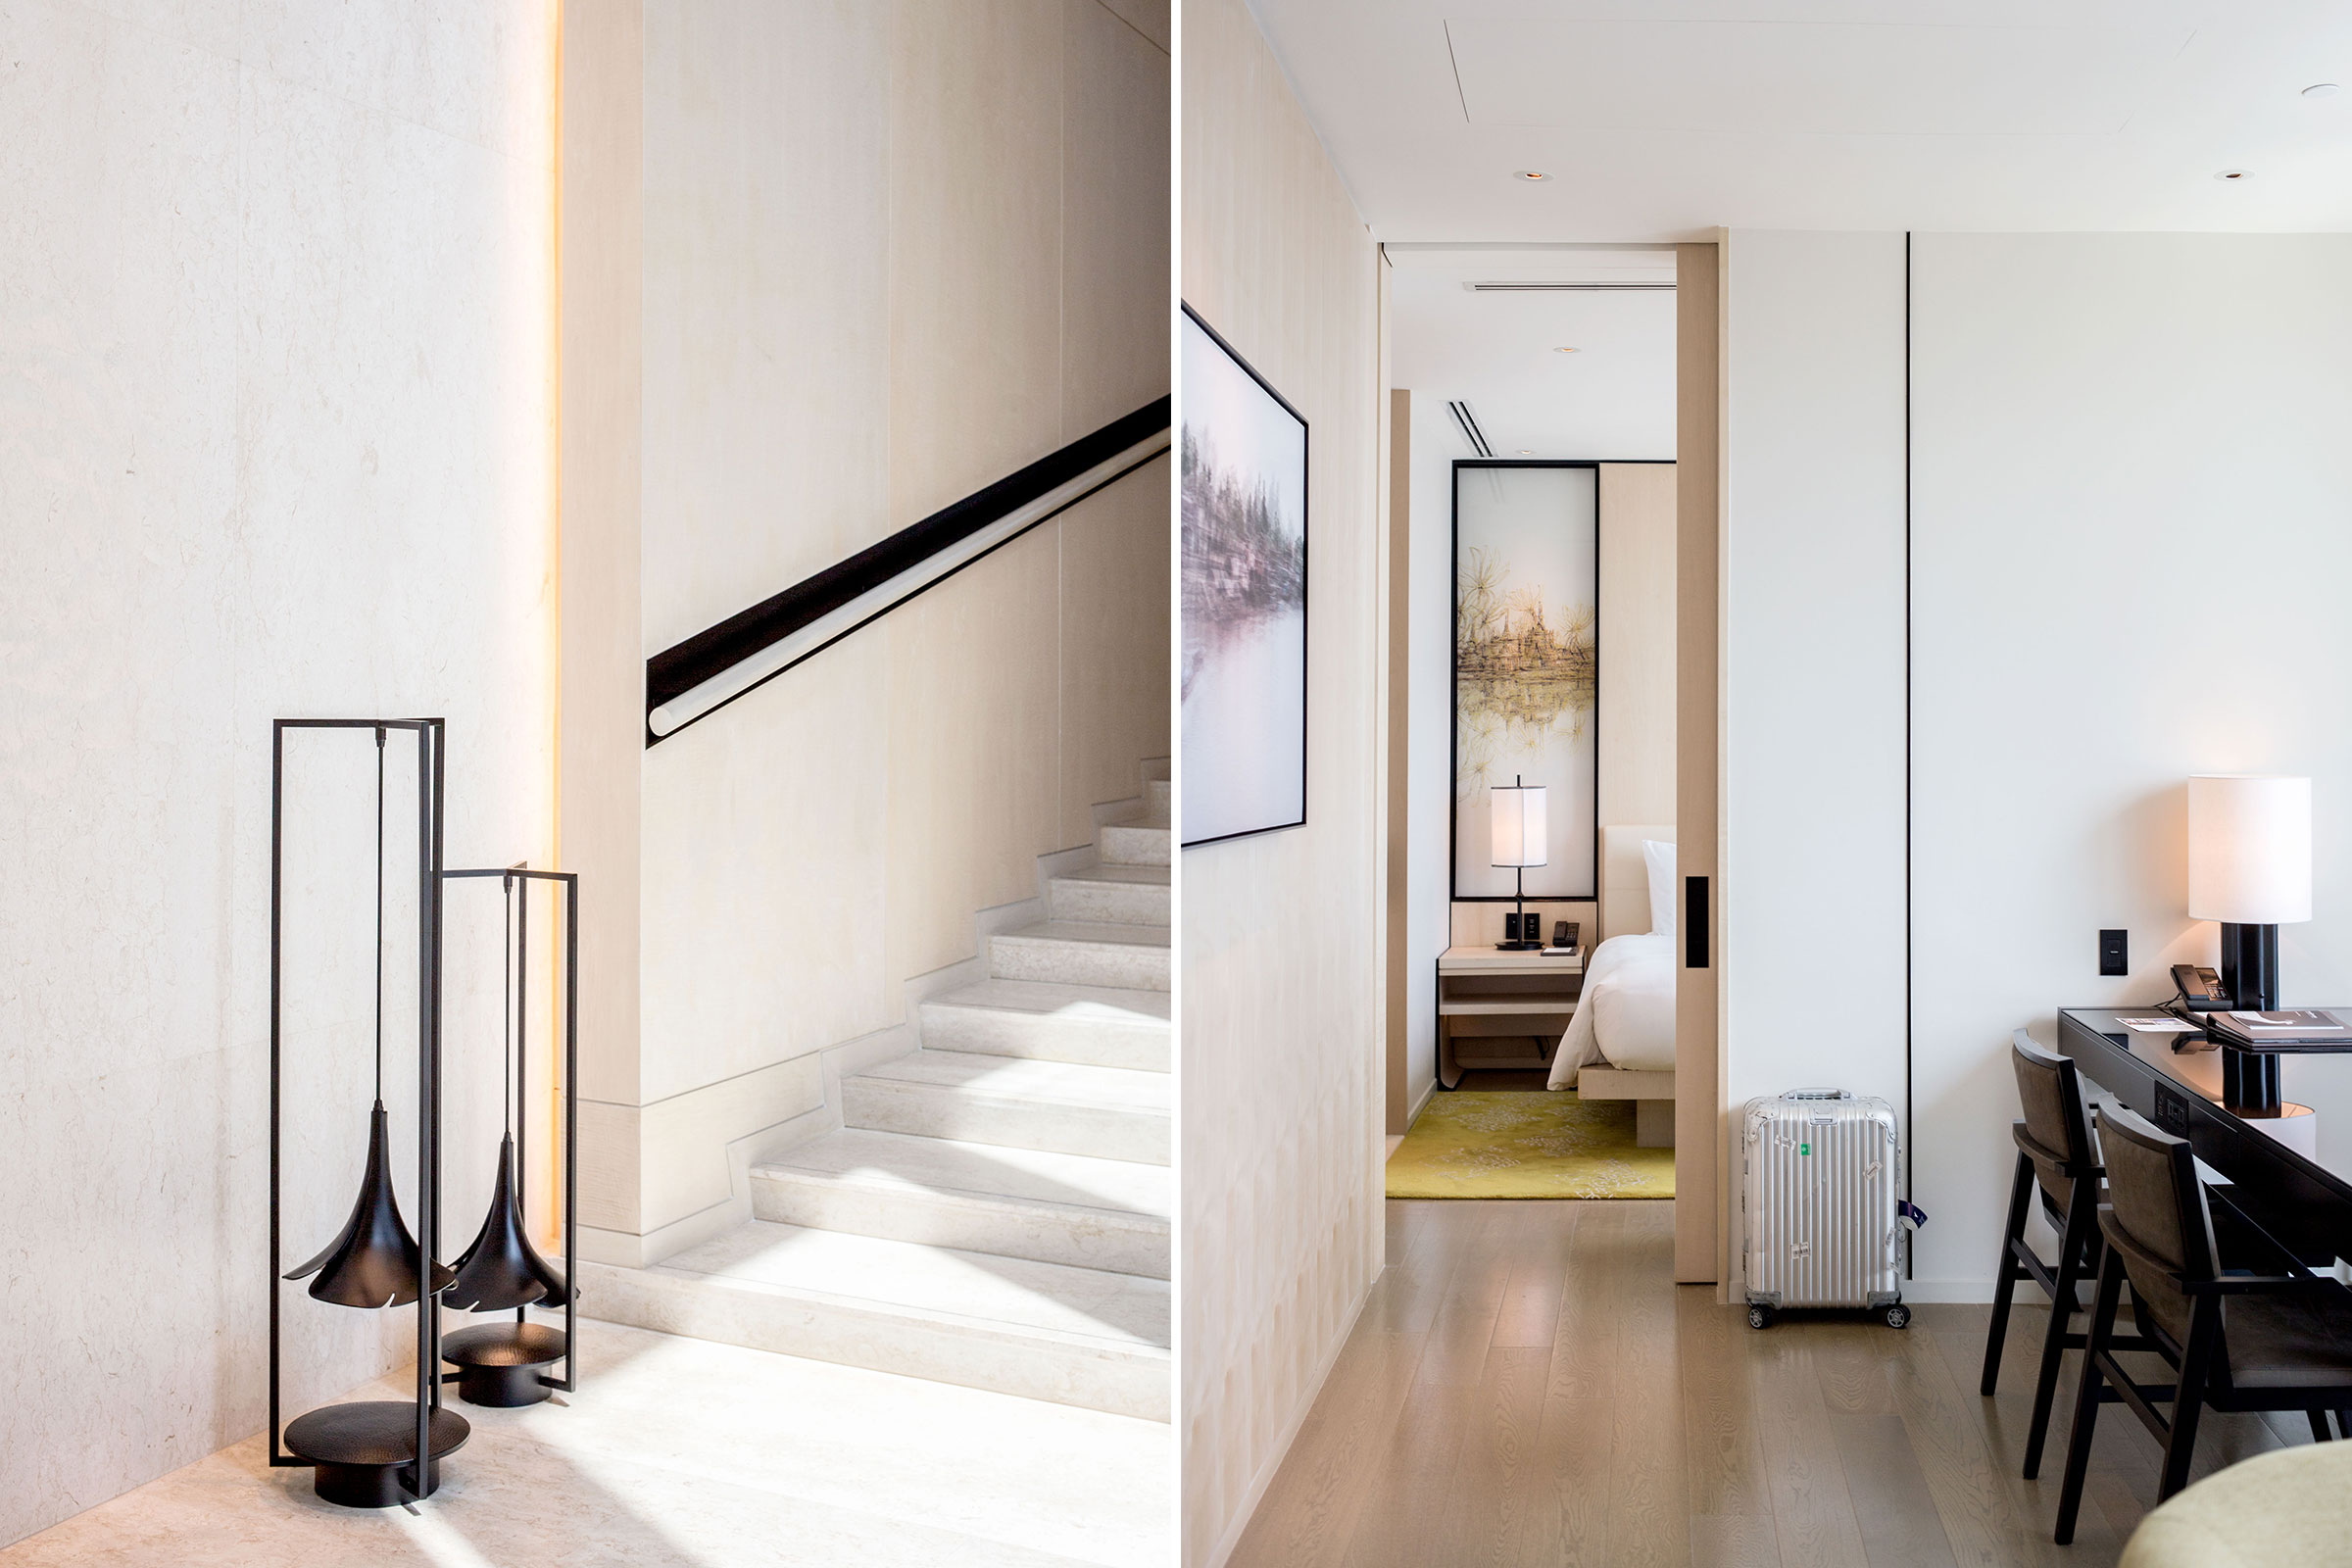 Client  Aerostorie   Project   How to Design a Weekend in Bangkok    Caption  Room and public space details at the newly opened Park Hyatt Bangkok.